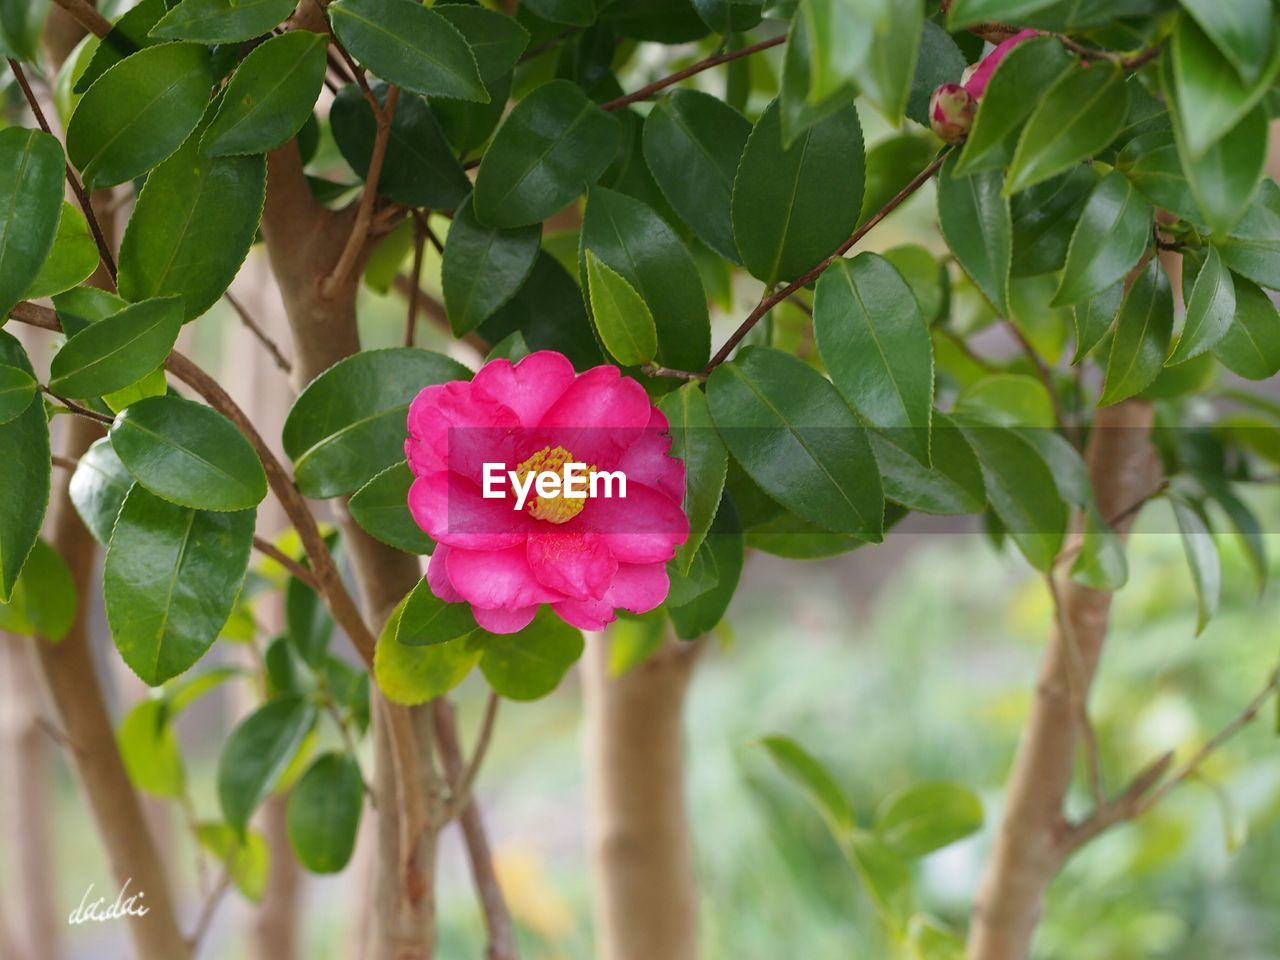 flower, growth, leaf, plant, pink color, petal, green color, nature, fragility, day, beauty in nature, outdoors, blooming, flower head, focus on foreground, freshness, close-up, no people, periwinkle